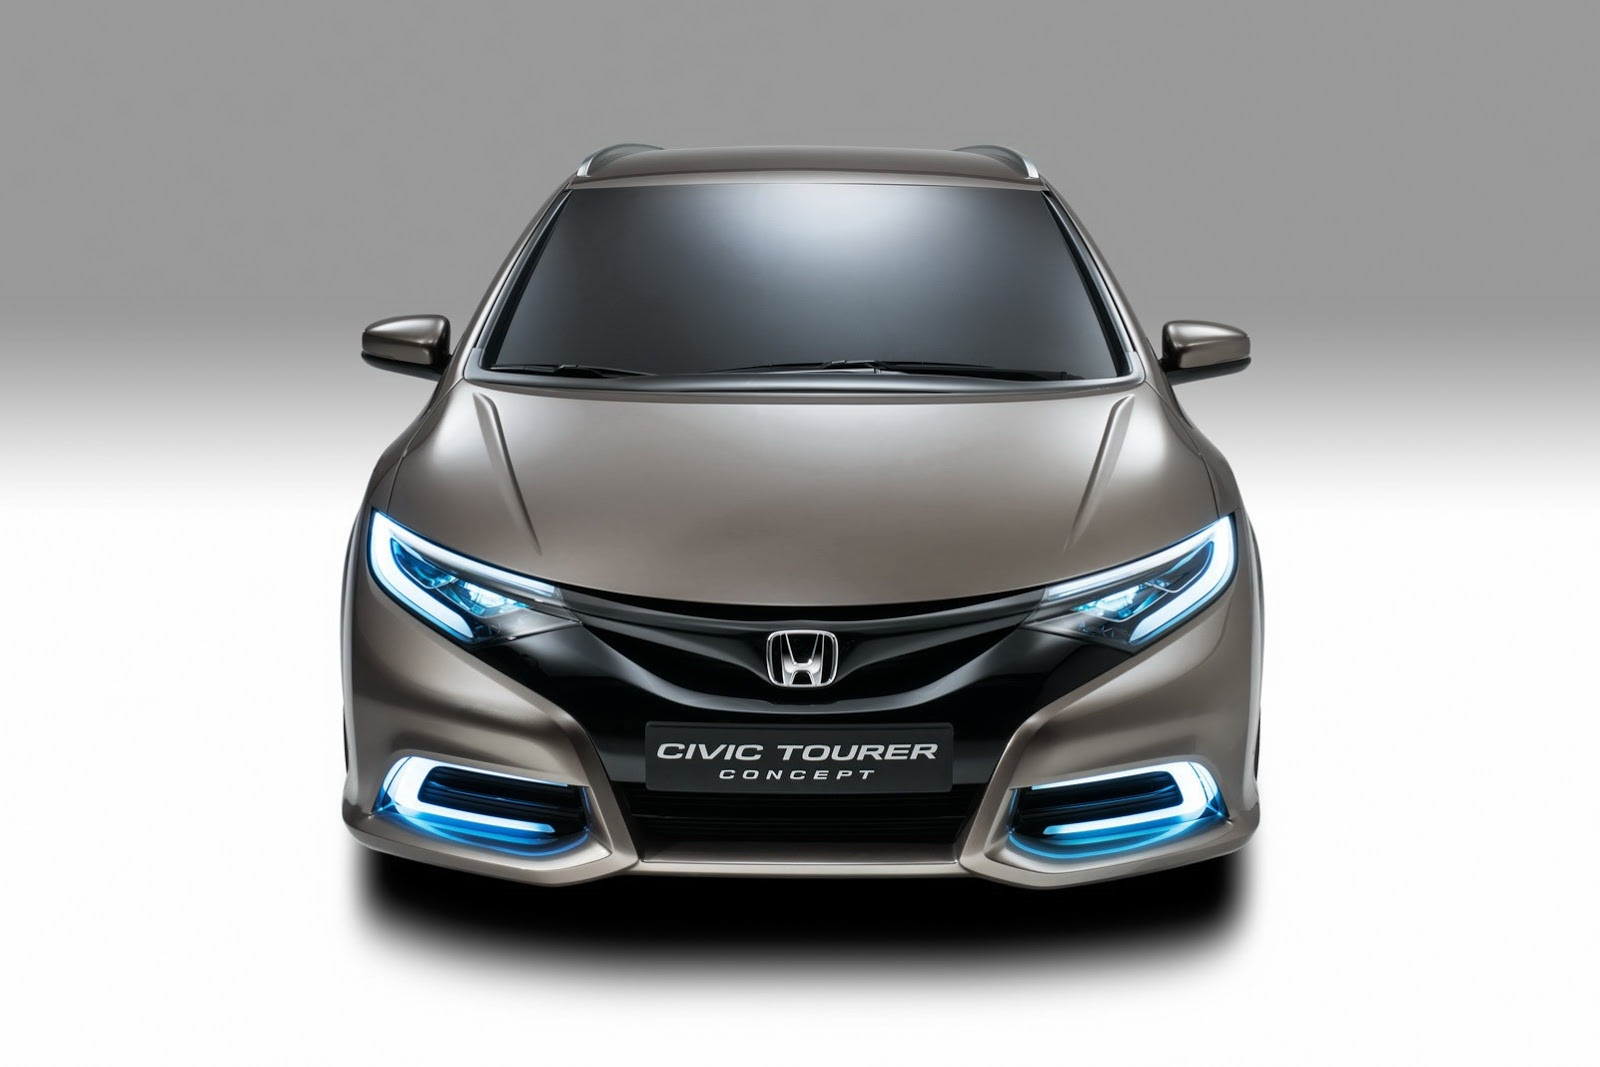 Honda Civic Wagon Concept Looks Beautiful in Geneva [Live Photos ...